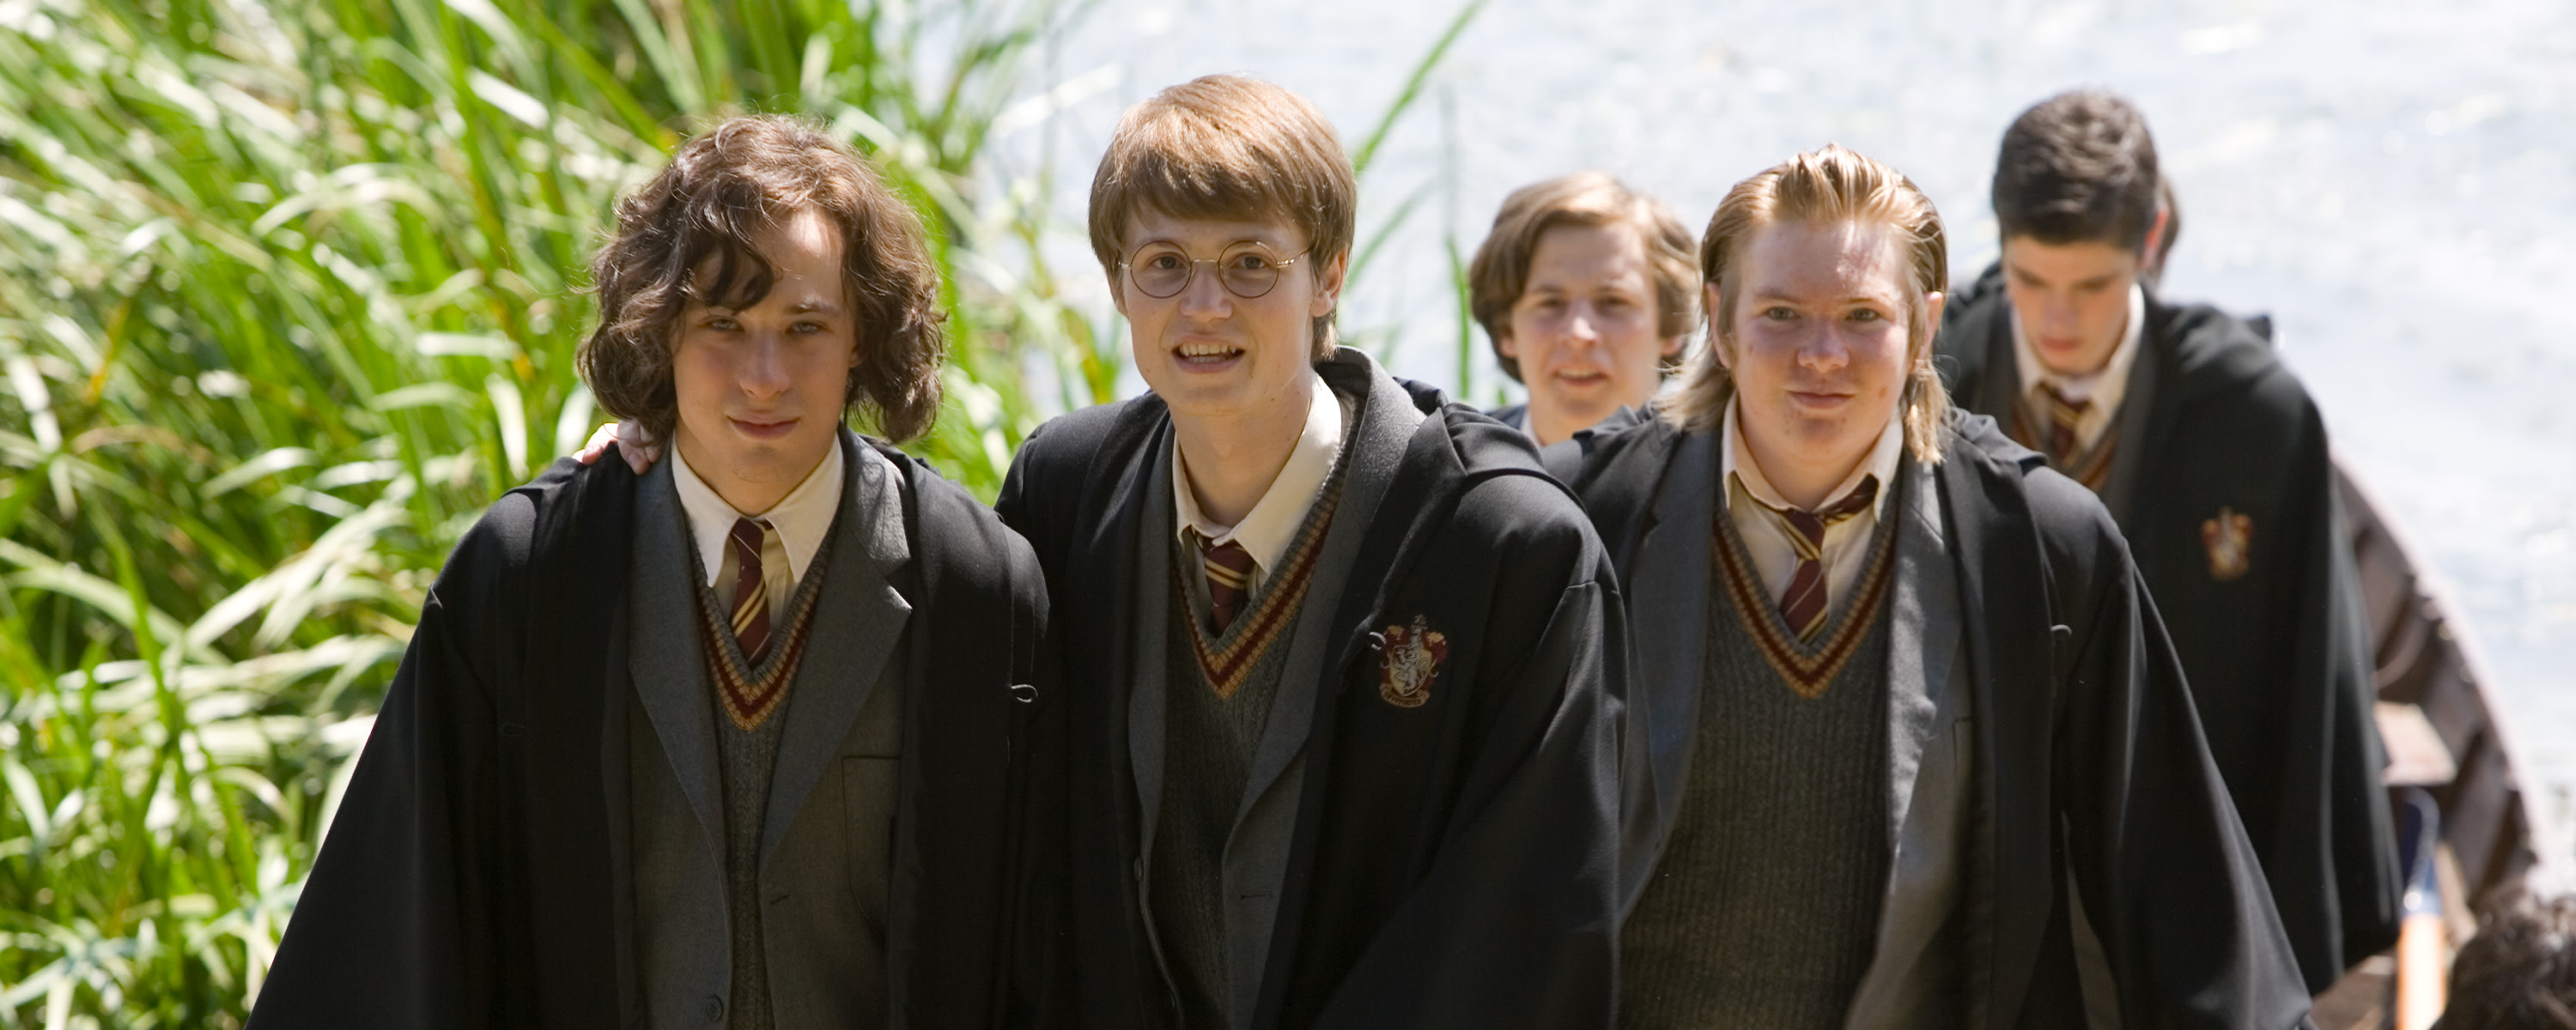 HP-F6-james-sirius-young-web-header